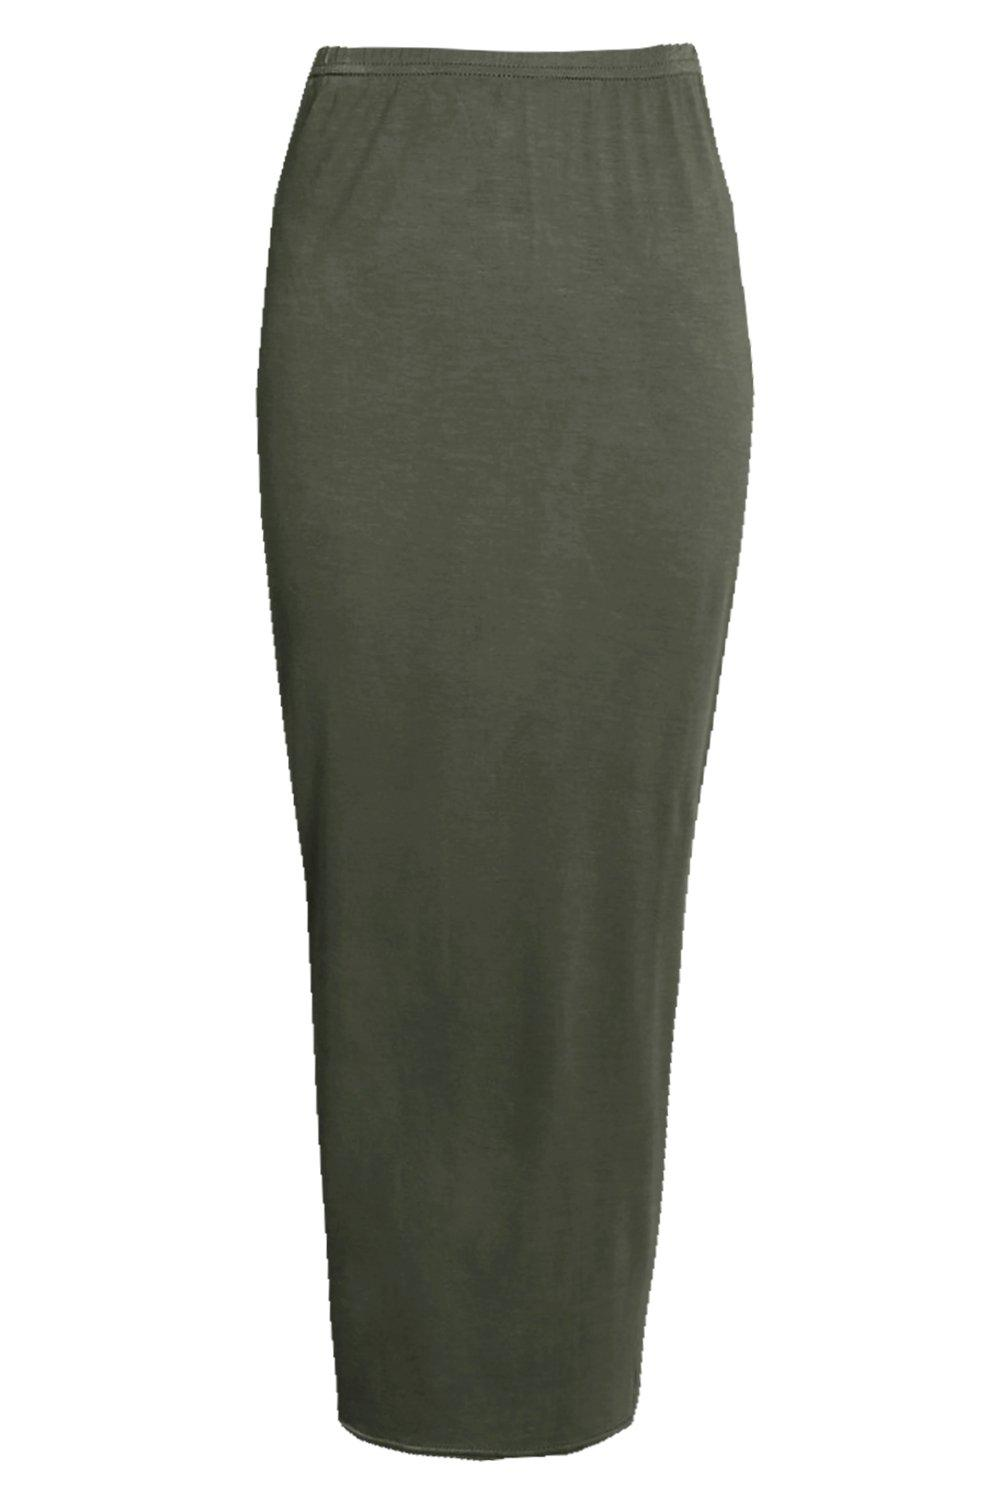 Rose Basic Jersey Long Line Midi Skirt at boohoo.com